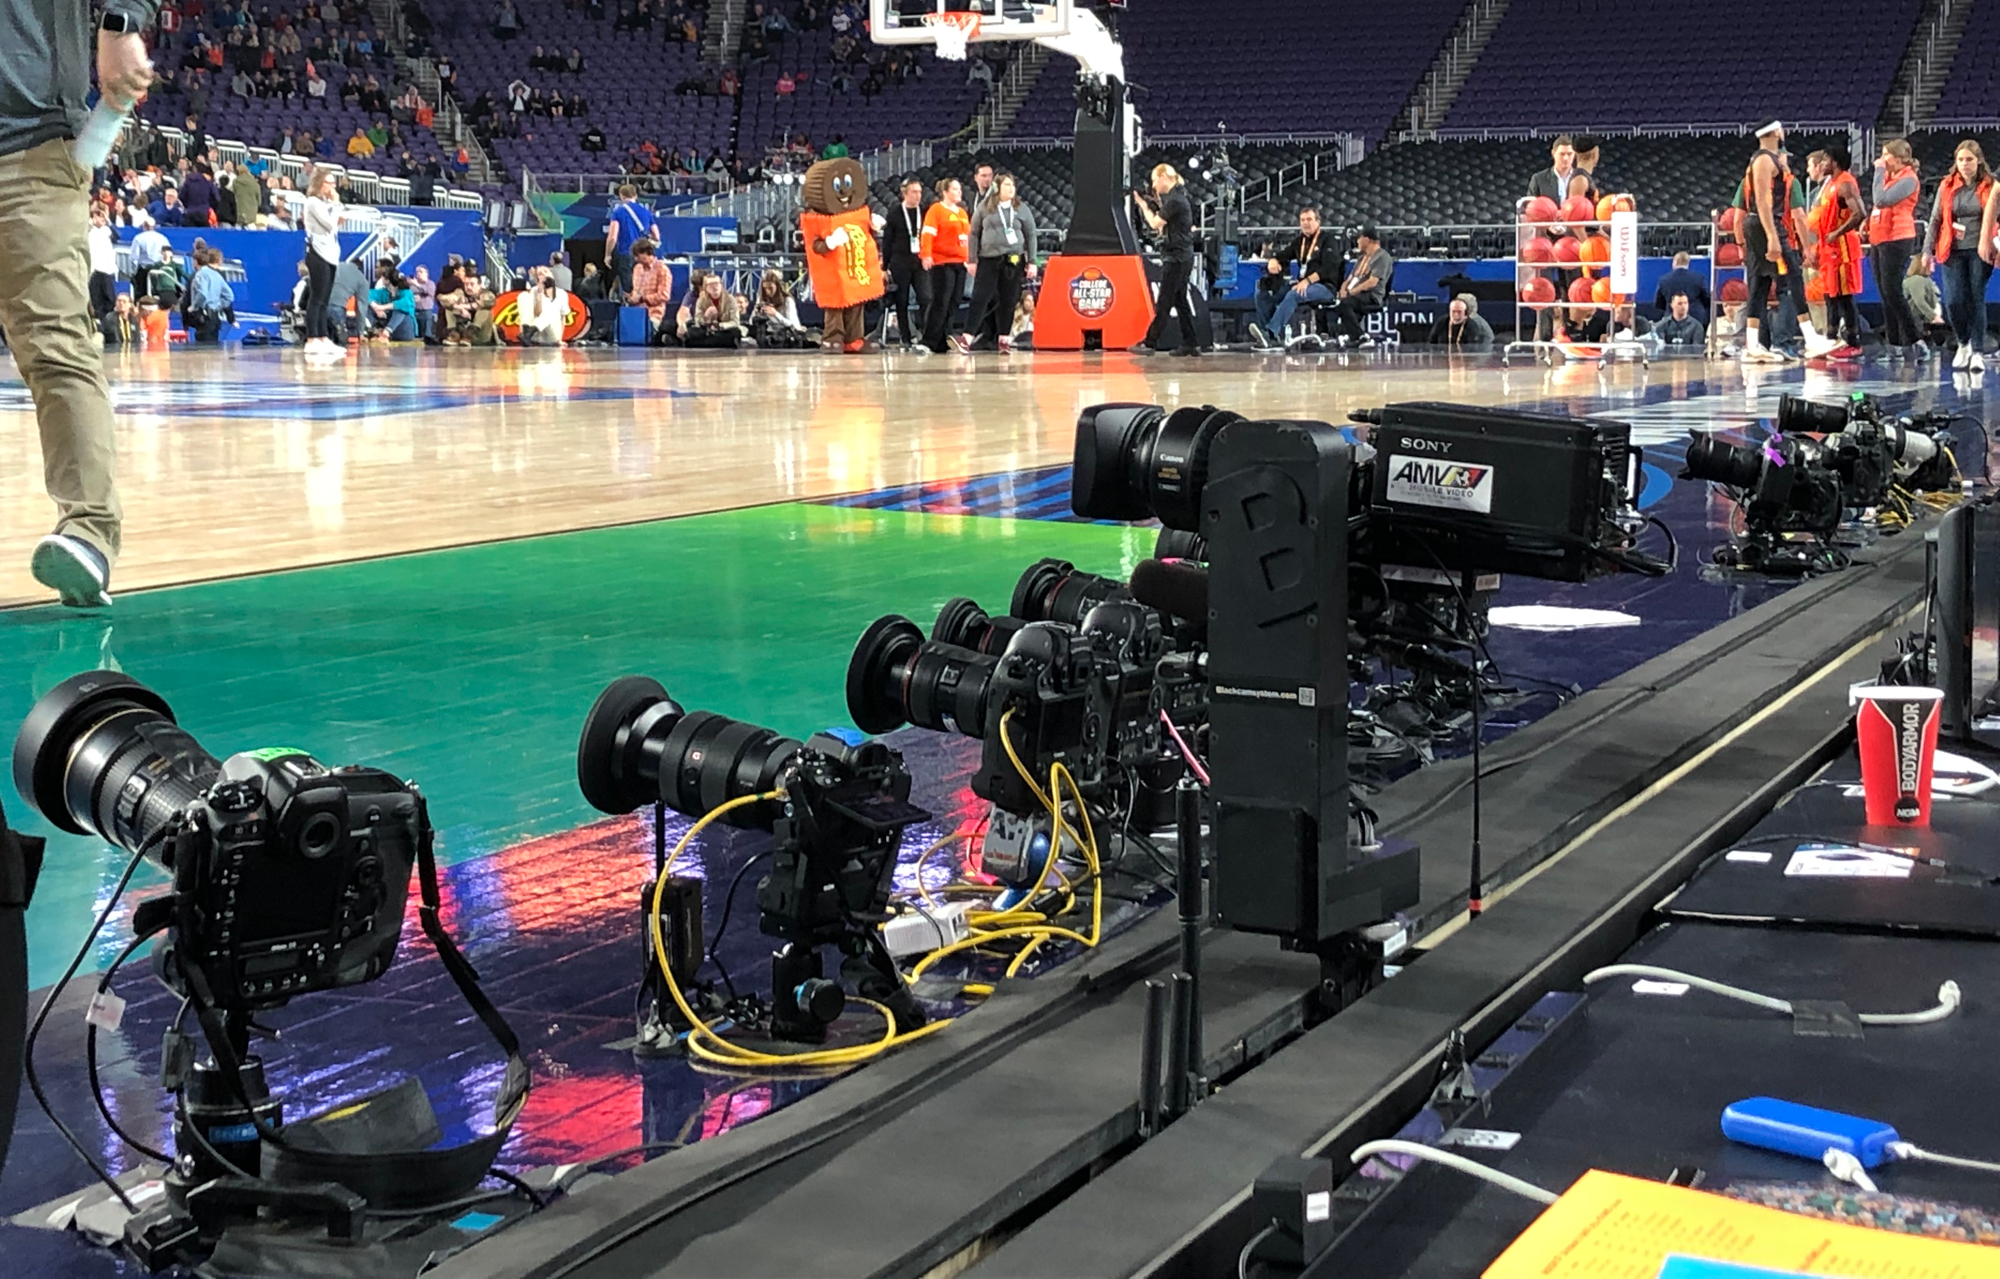 Live From Final Four For Cbs And Turner One Of The Year